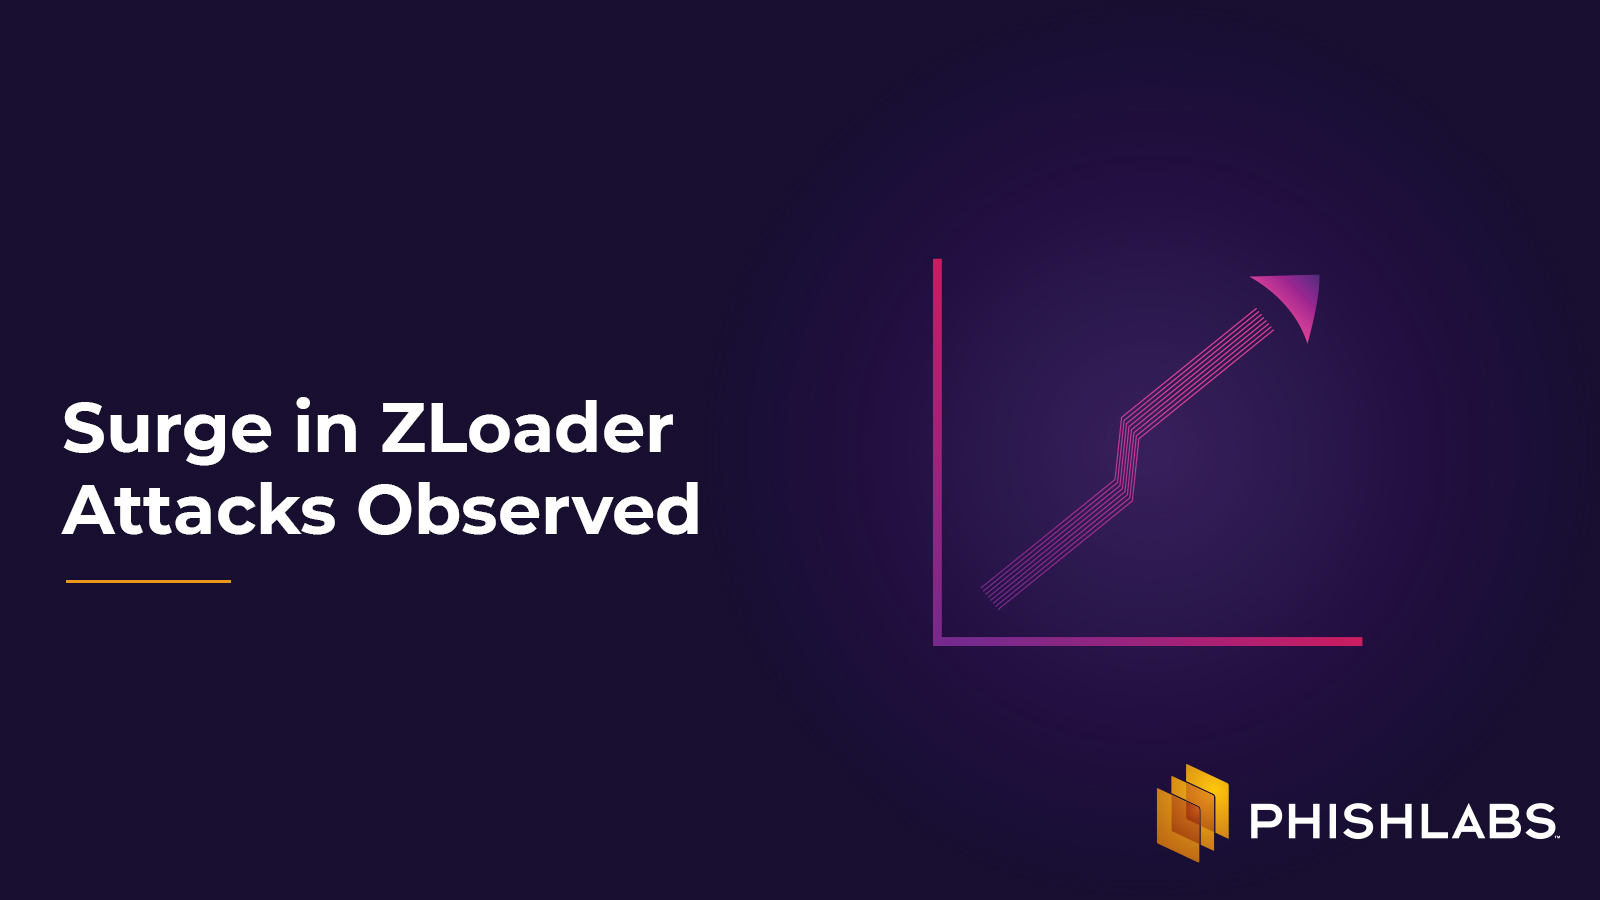 Surge in ZLoader Attacks Observed